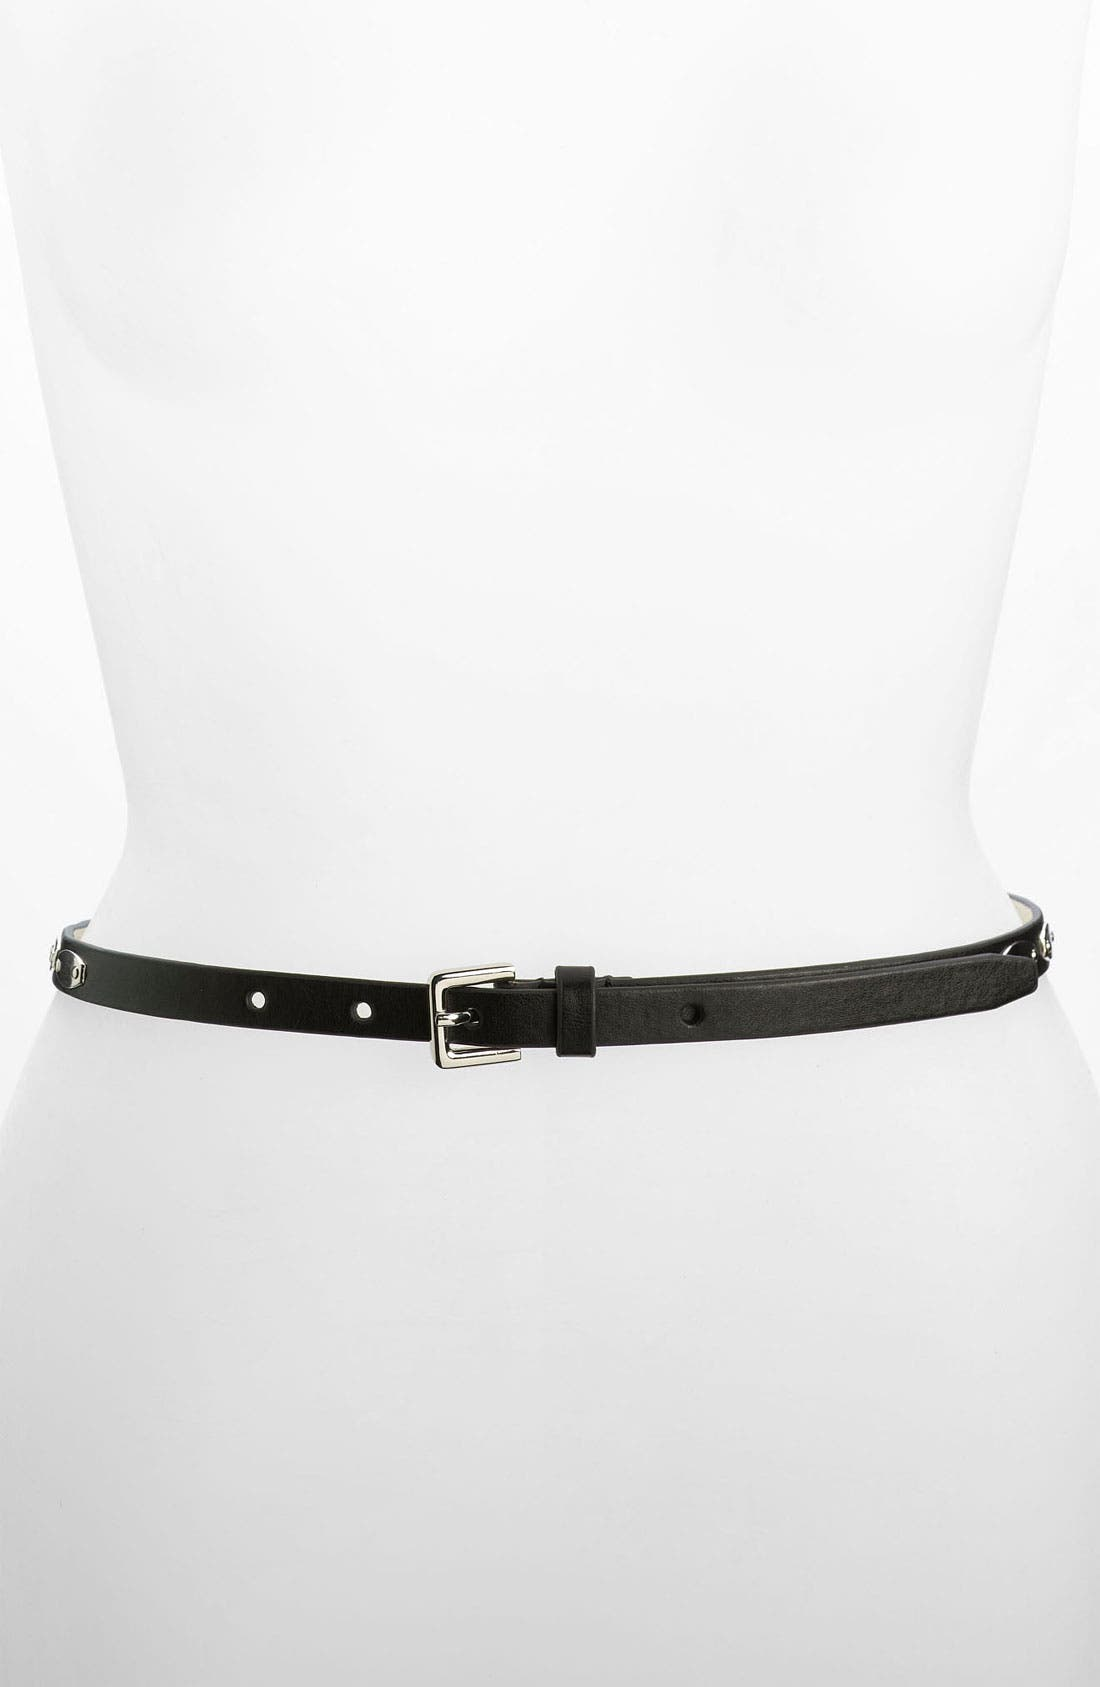 Alternate Image 3  - Steven by Steve Madden 'Glitter to Stud' Belts (2-Pack)